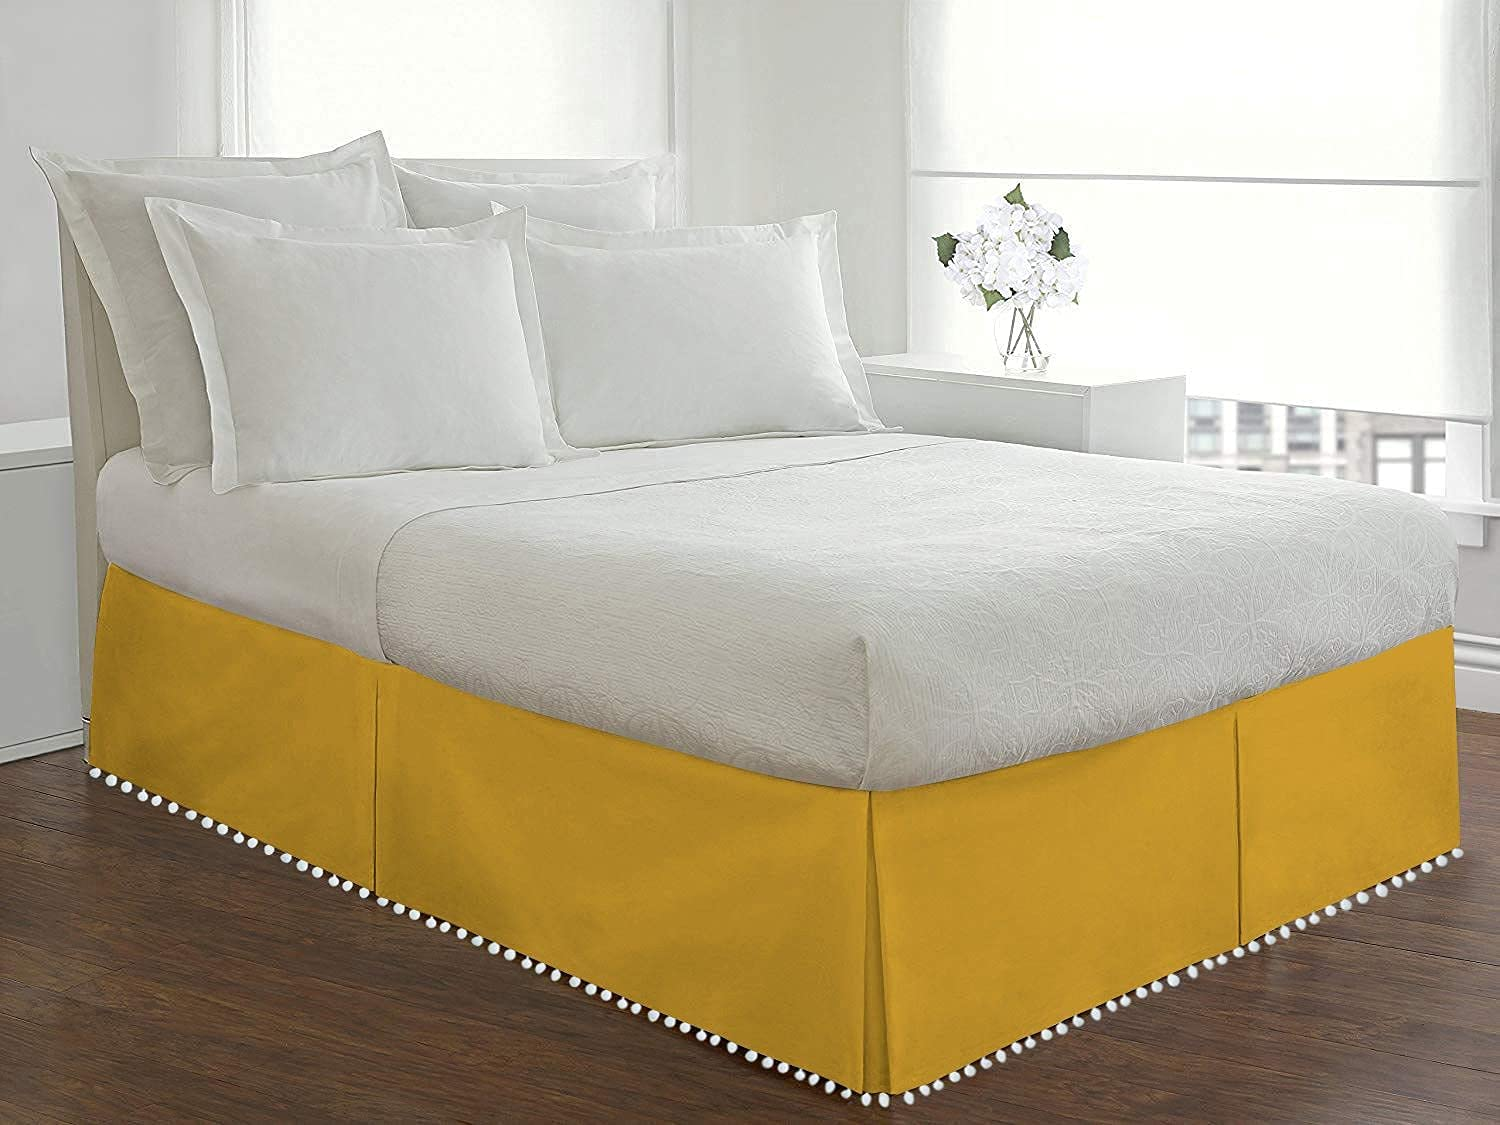 Idle Decor Pom Tailored BedSkirt 100% Th Egyptian Indefinitely Portland Mall 800 Cotton